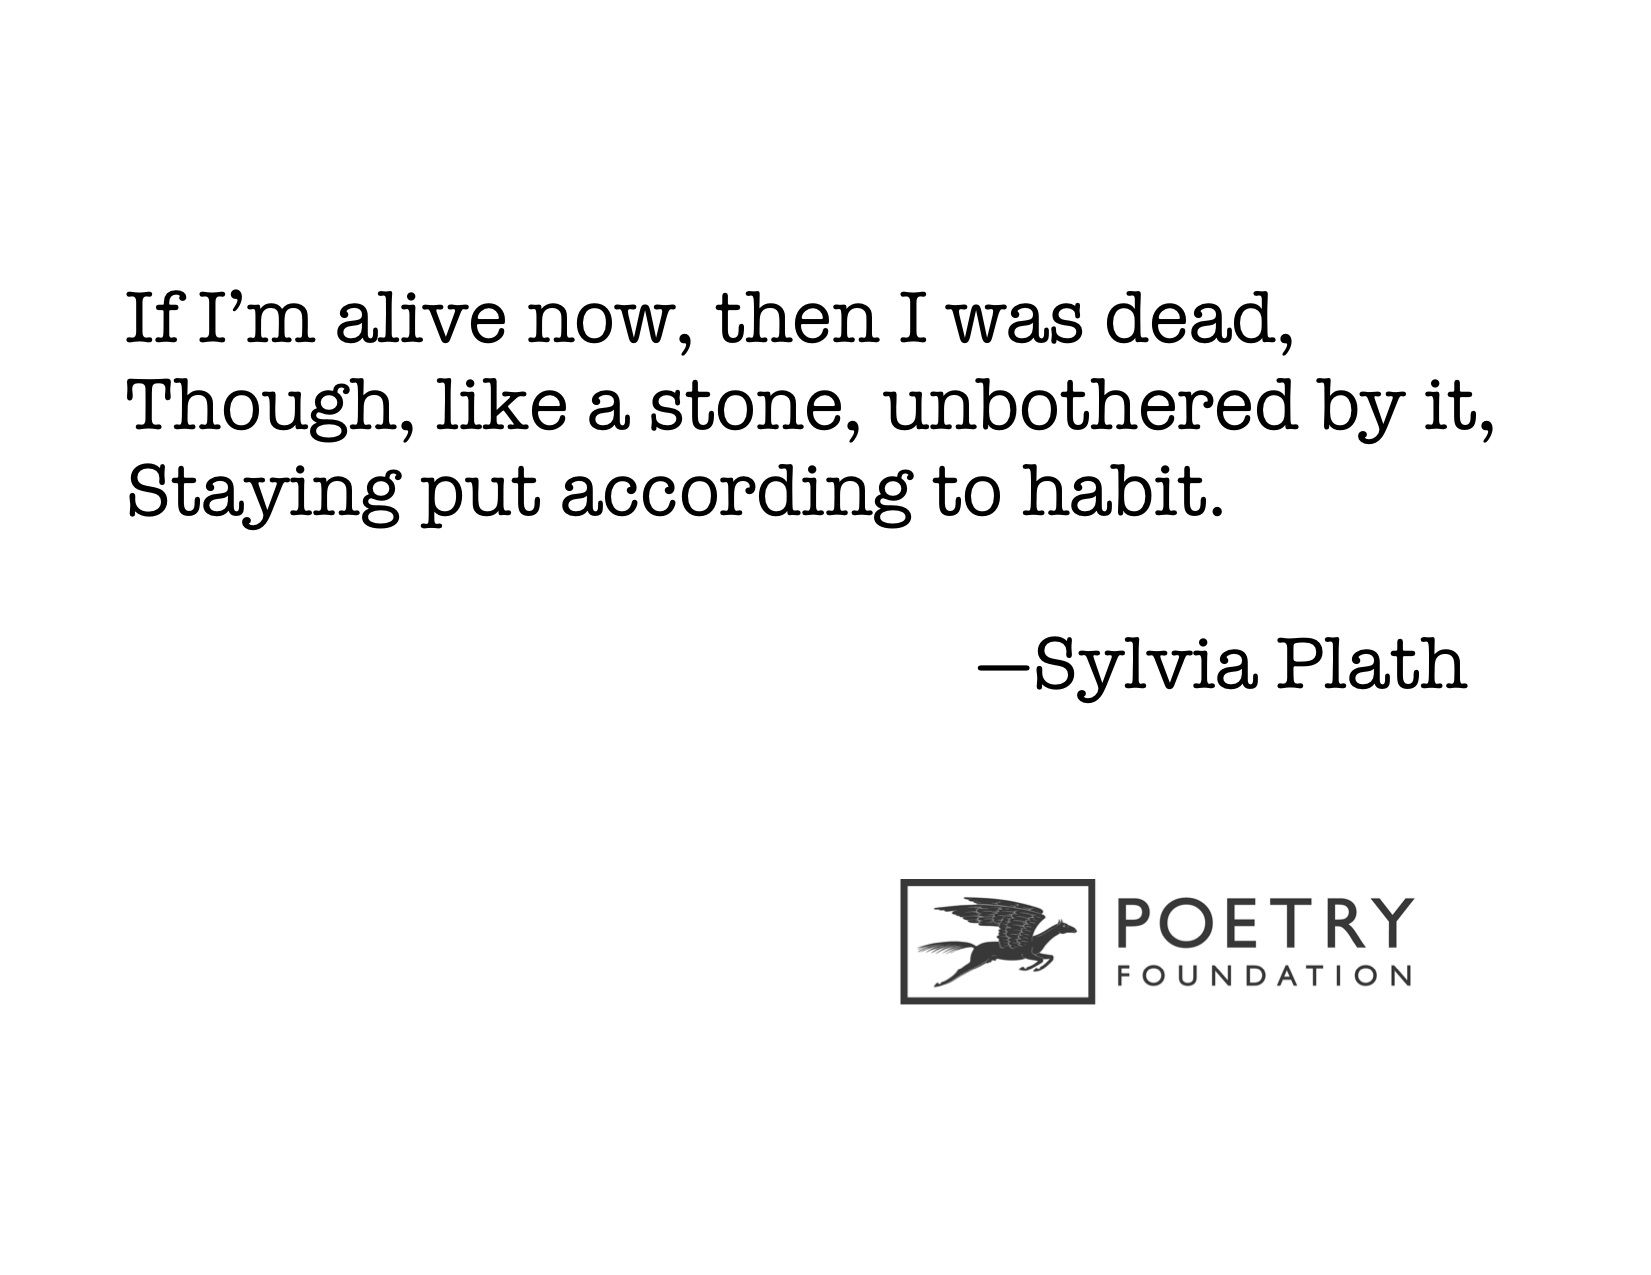 """a literary analysis of the poem in plaster by sylvia plath Analysis of sylvia plath's poem """"to eva descending upon the stair"""" essay sylvia plaths' verse form """"to eva descending the stair"""" may at foremost seem merely a petit larceny pretty piece with a few good initial rhymes which plays upon the overused enigma of the universe."""